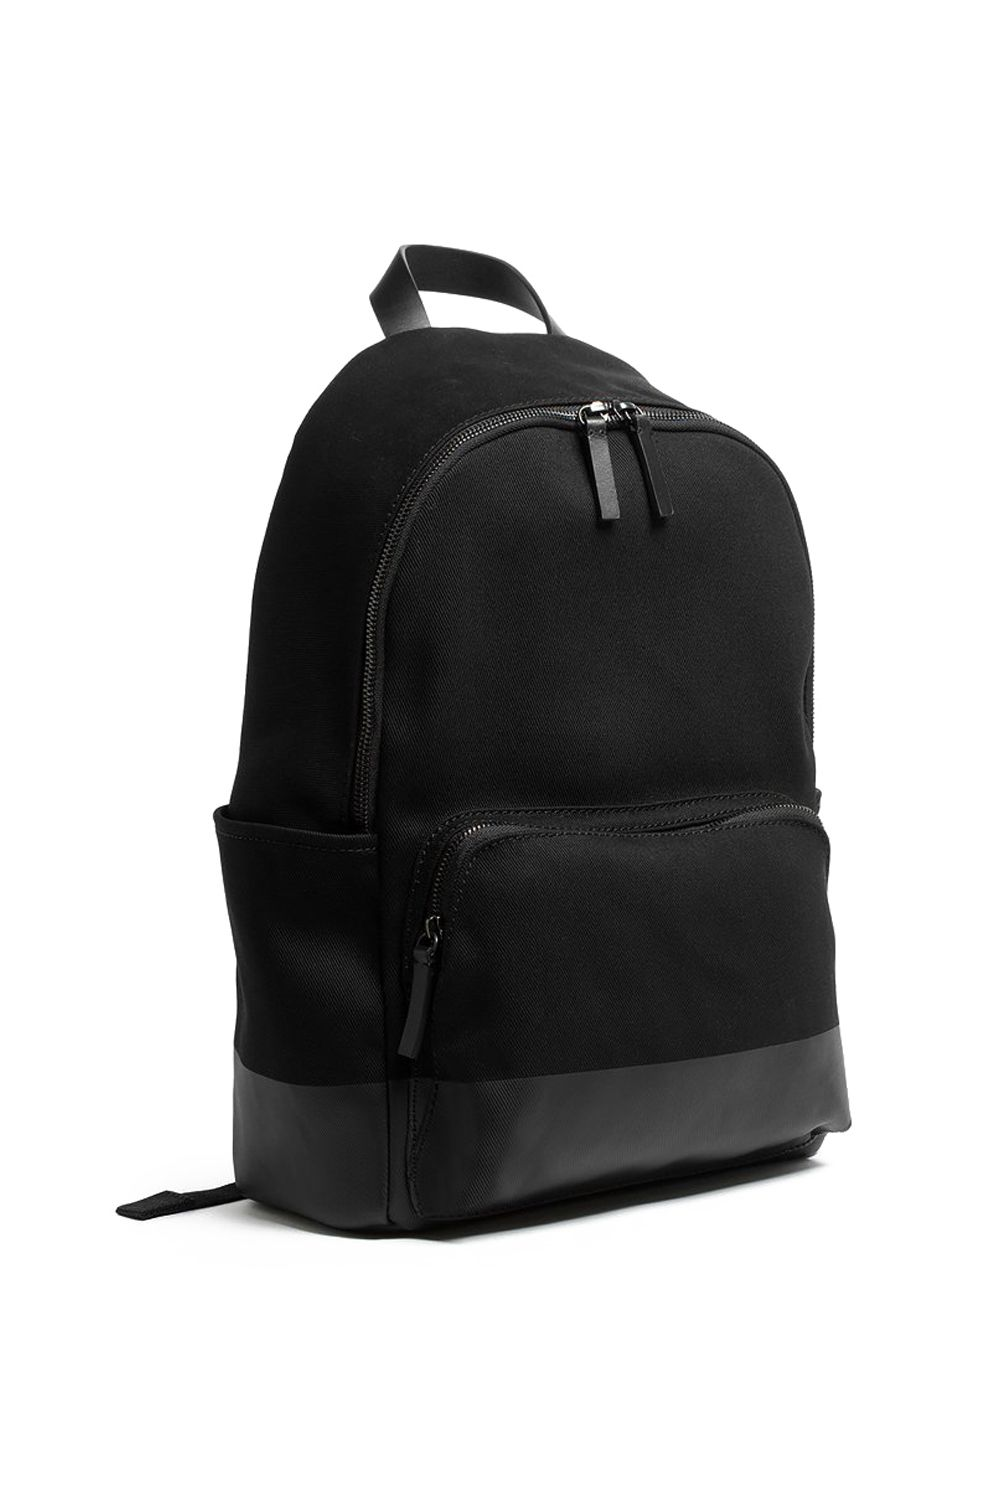 Cheap School Backpack Brands- Fenix Toulouse Handball 6f5ee04b74c1f